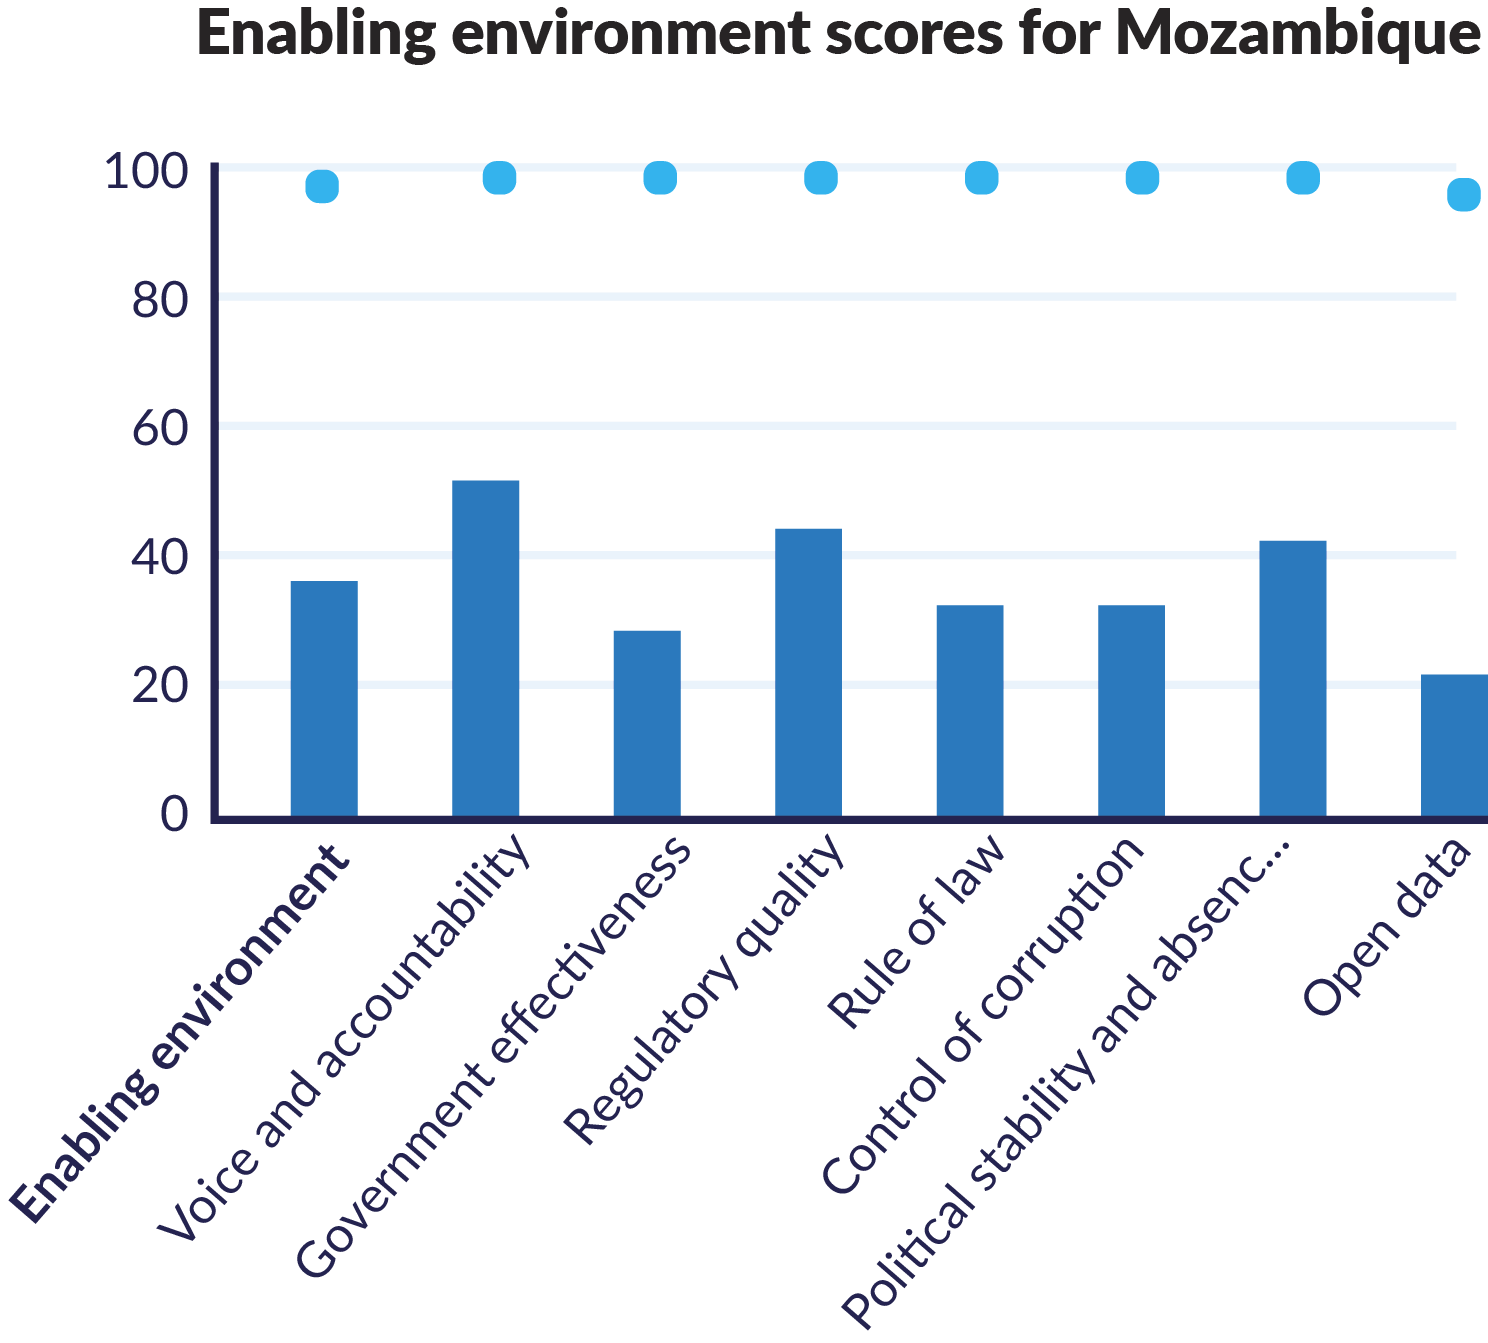 Chart showing Enabling environment score for Mozambique